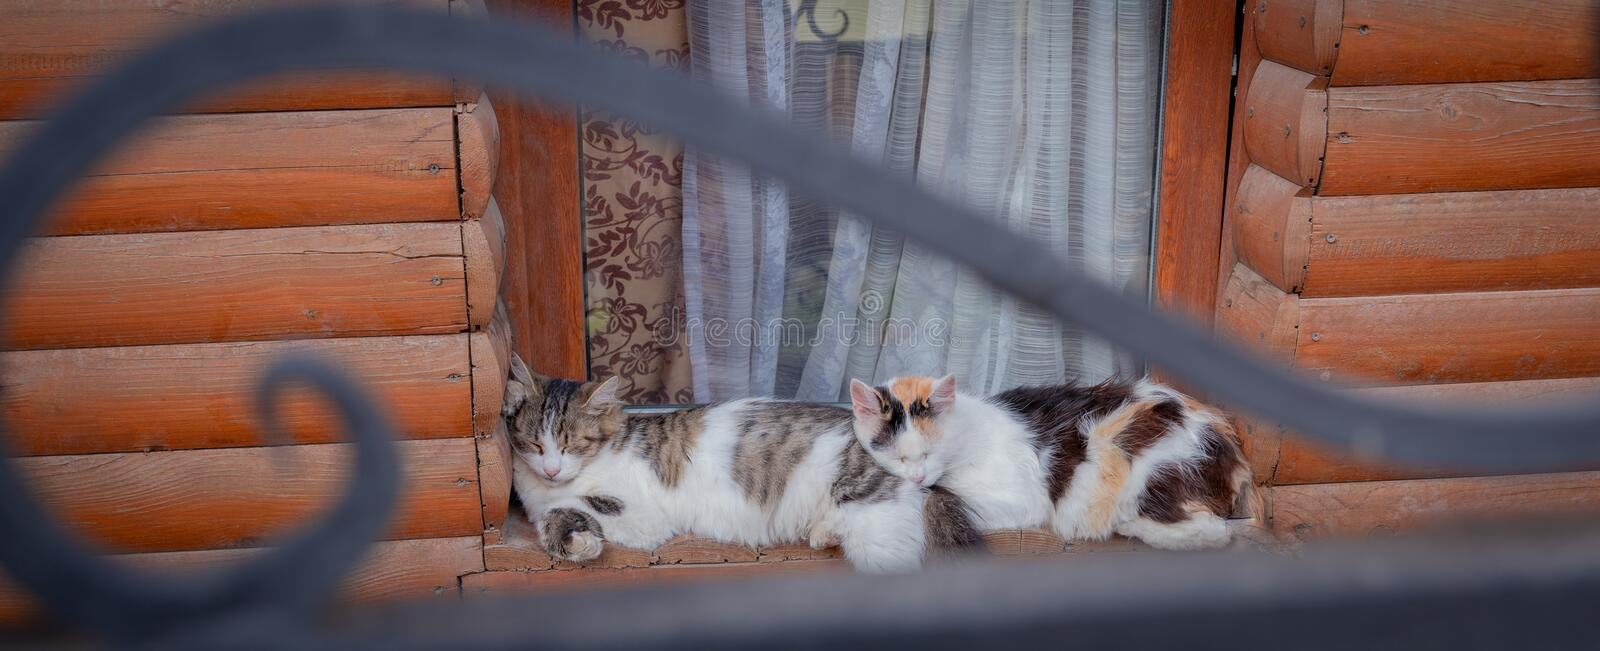 Two cats sleeping on the old wood window sill together stock photos